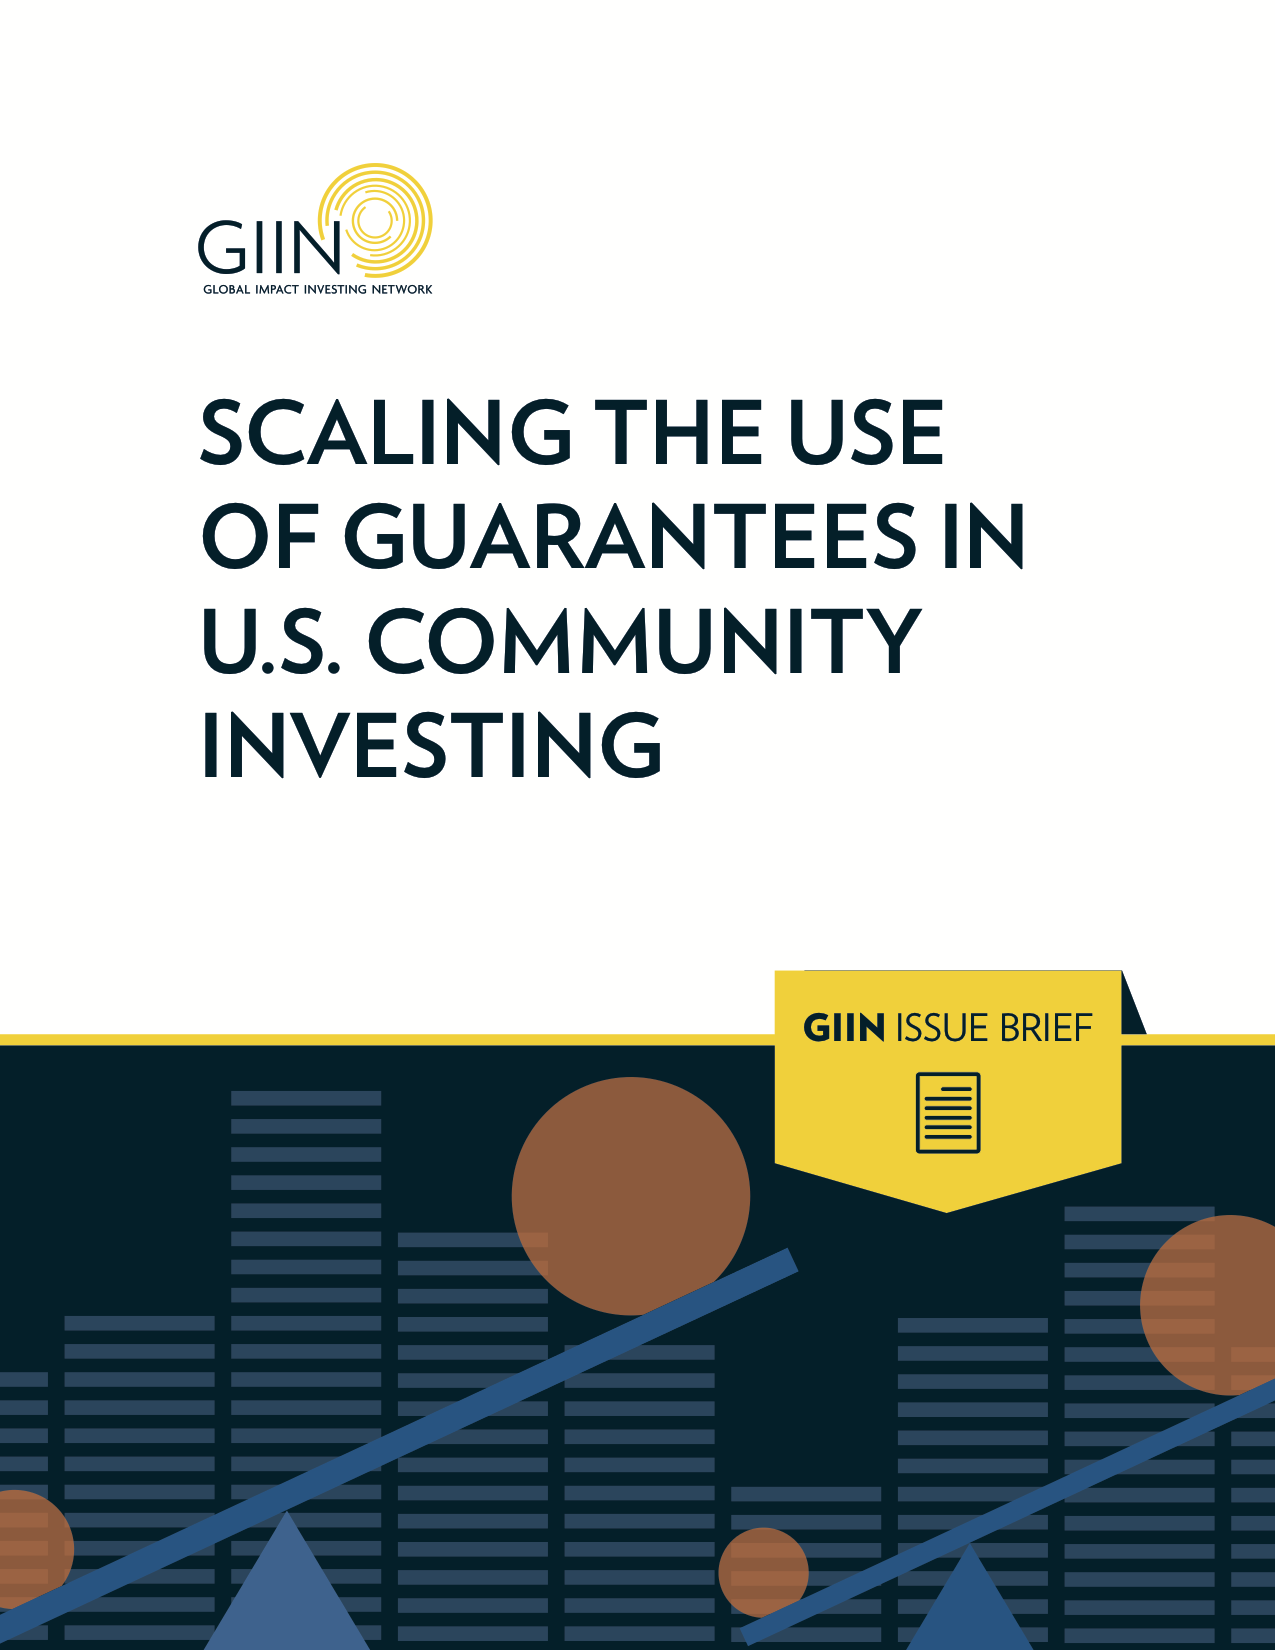 Scaling the Use of Guarantees in U.S. Community Investing